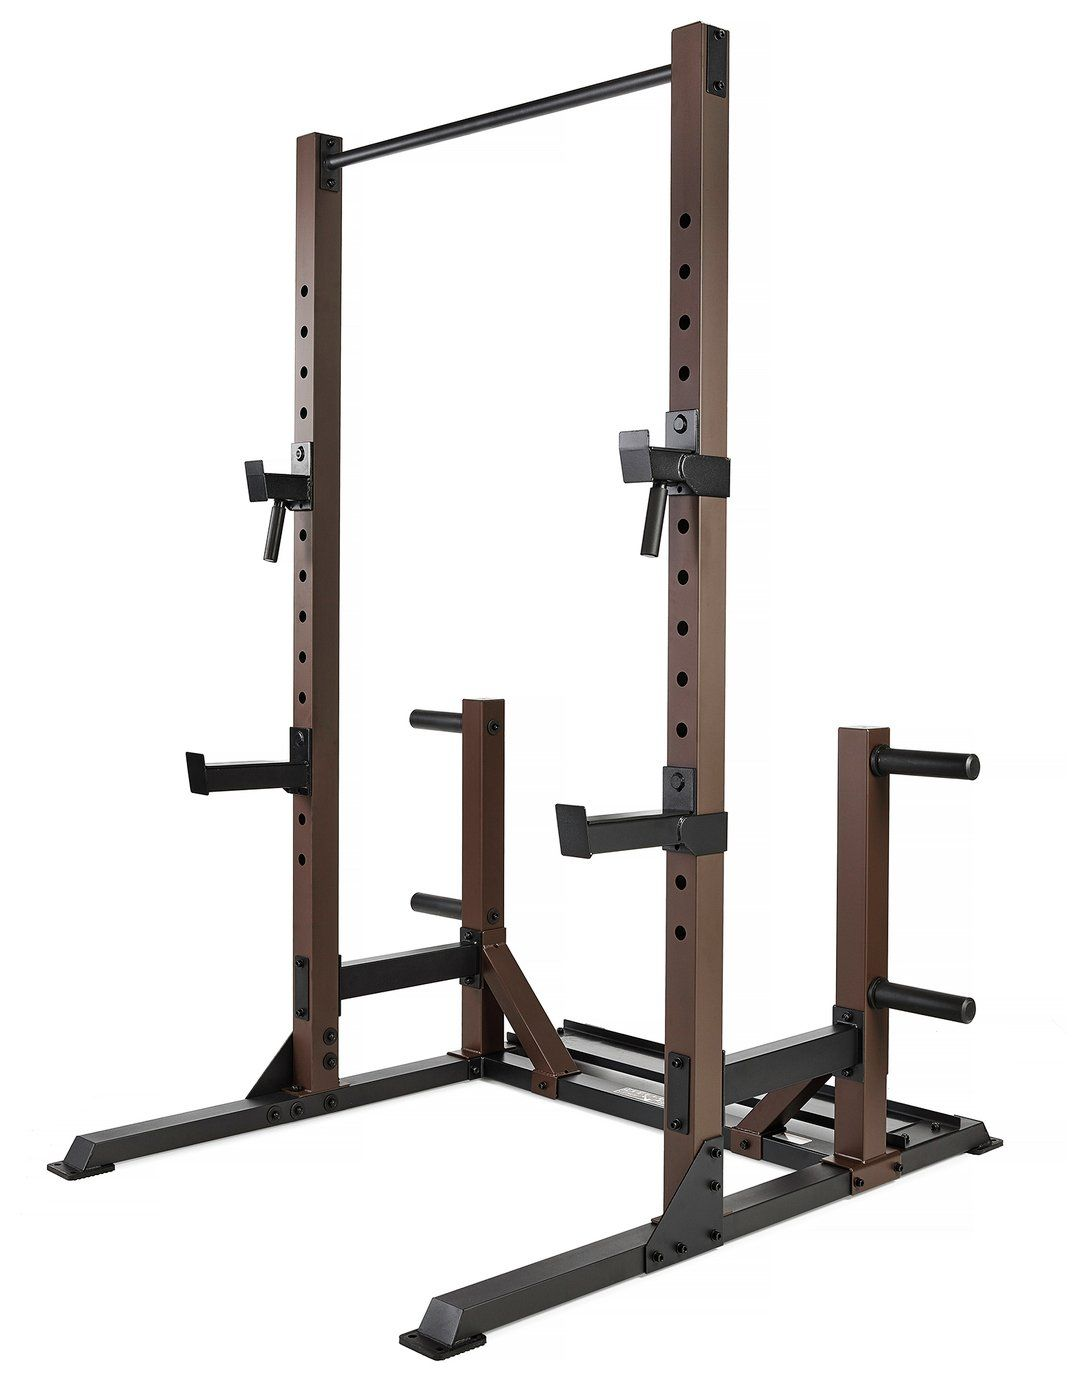 Steelbody By Marcy Power Rack With Pull Up Bar Homemade Gym Equipment Home Gym Diy Gym Equipment